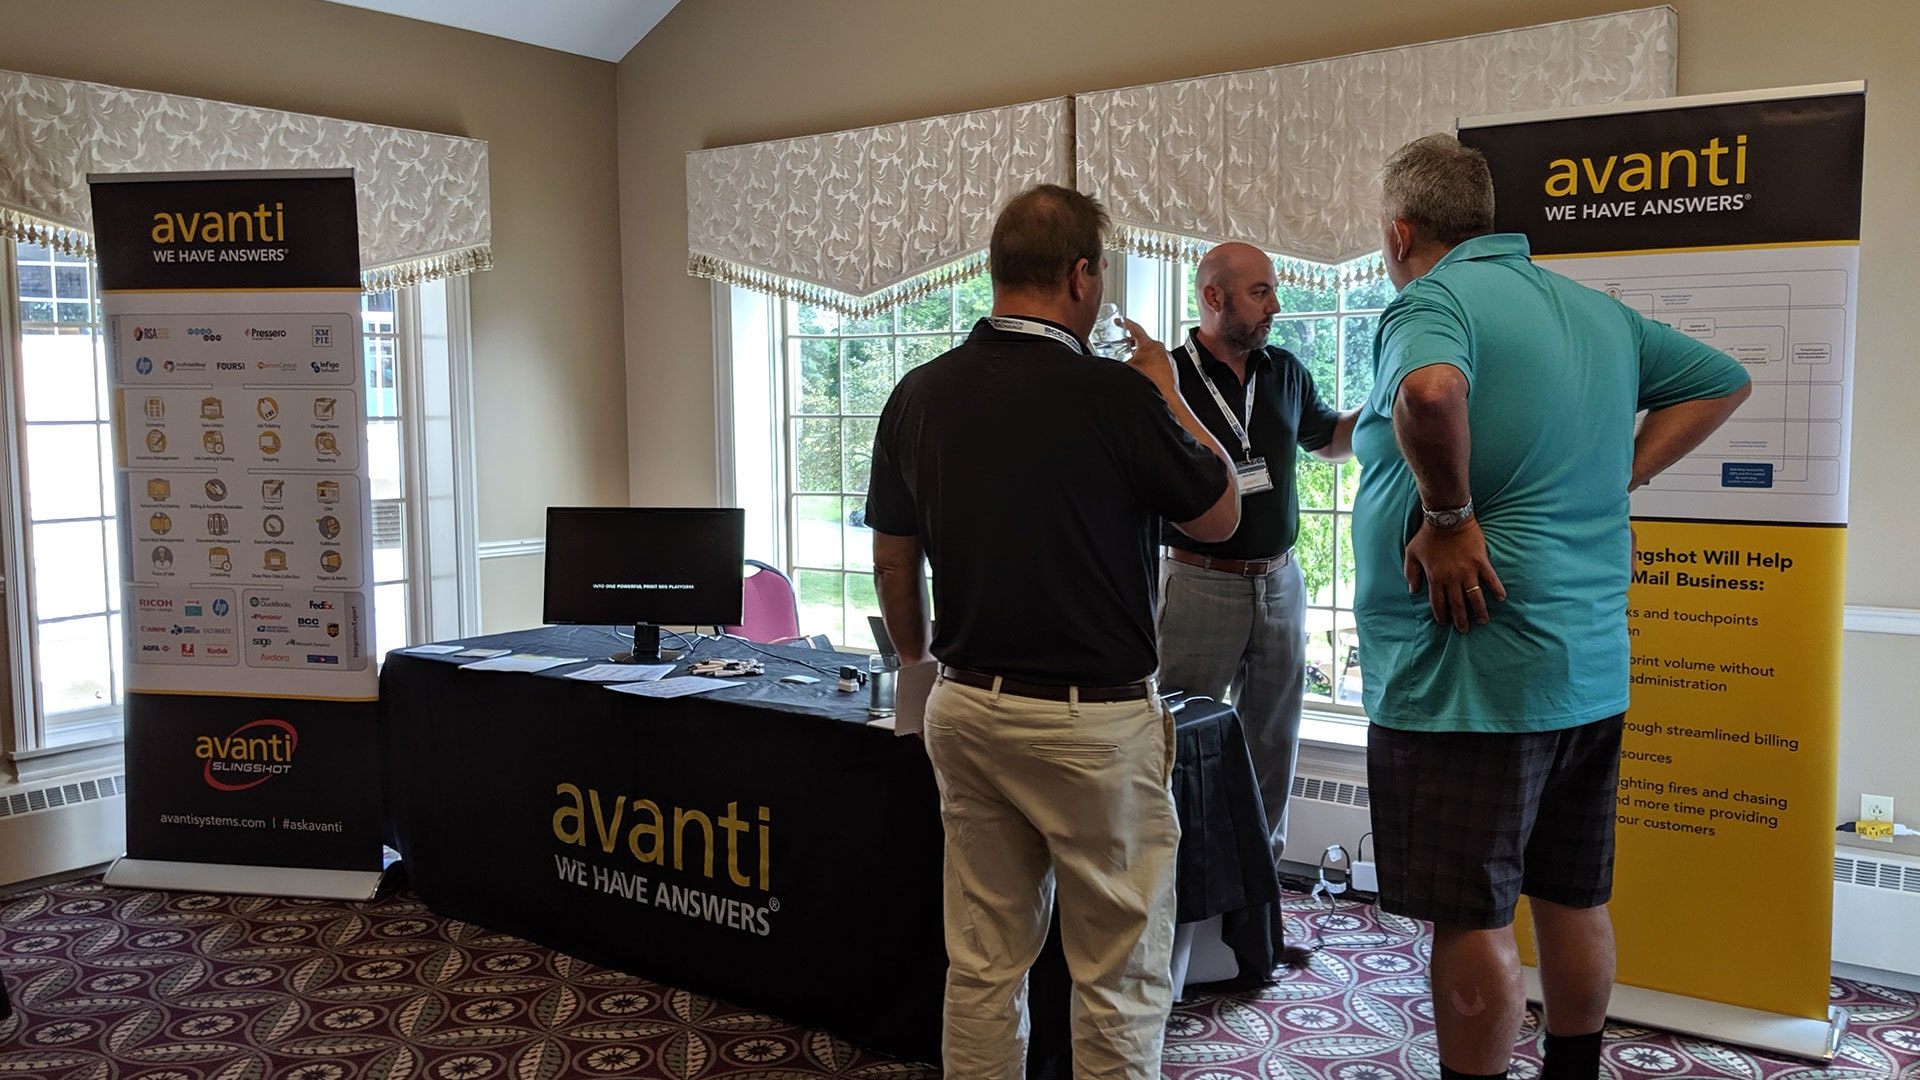 Show sponsor Avanti giving answers during the IE Meeting Zone